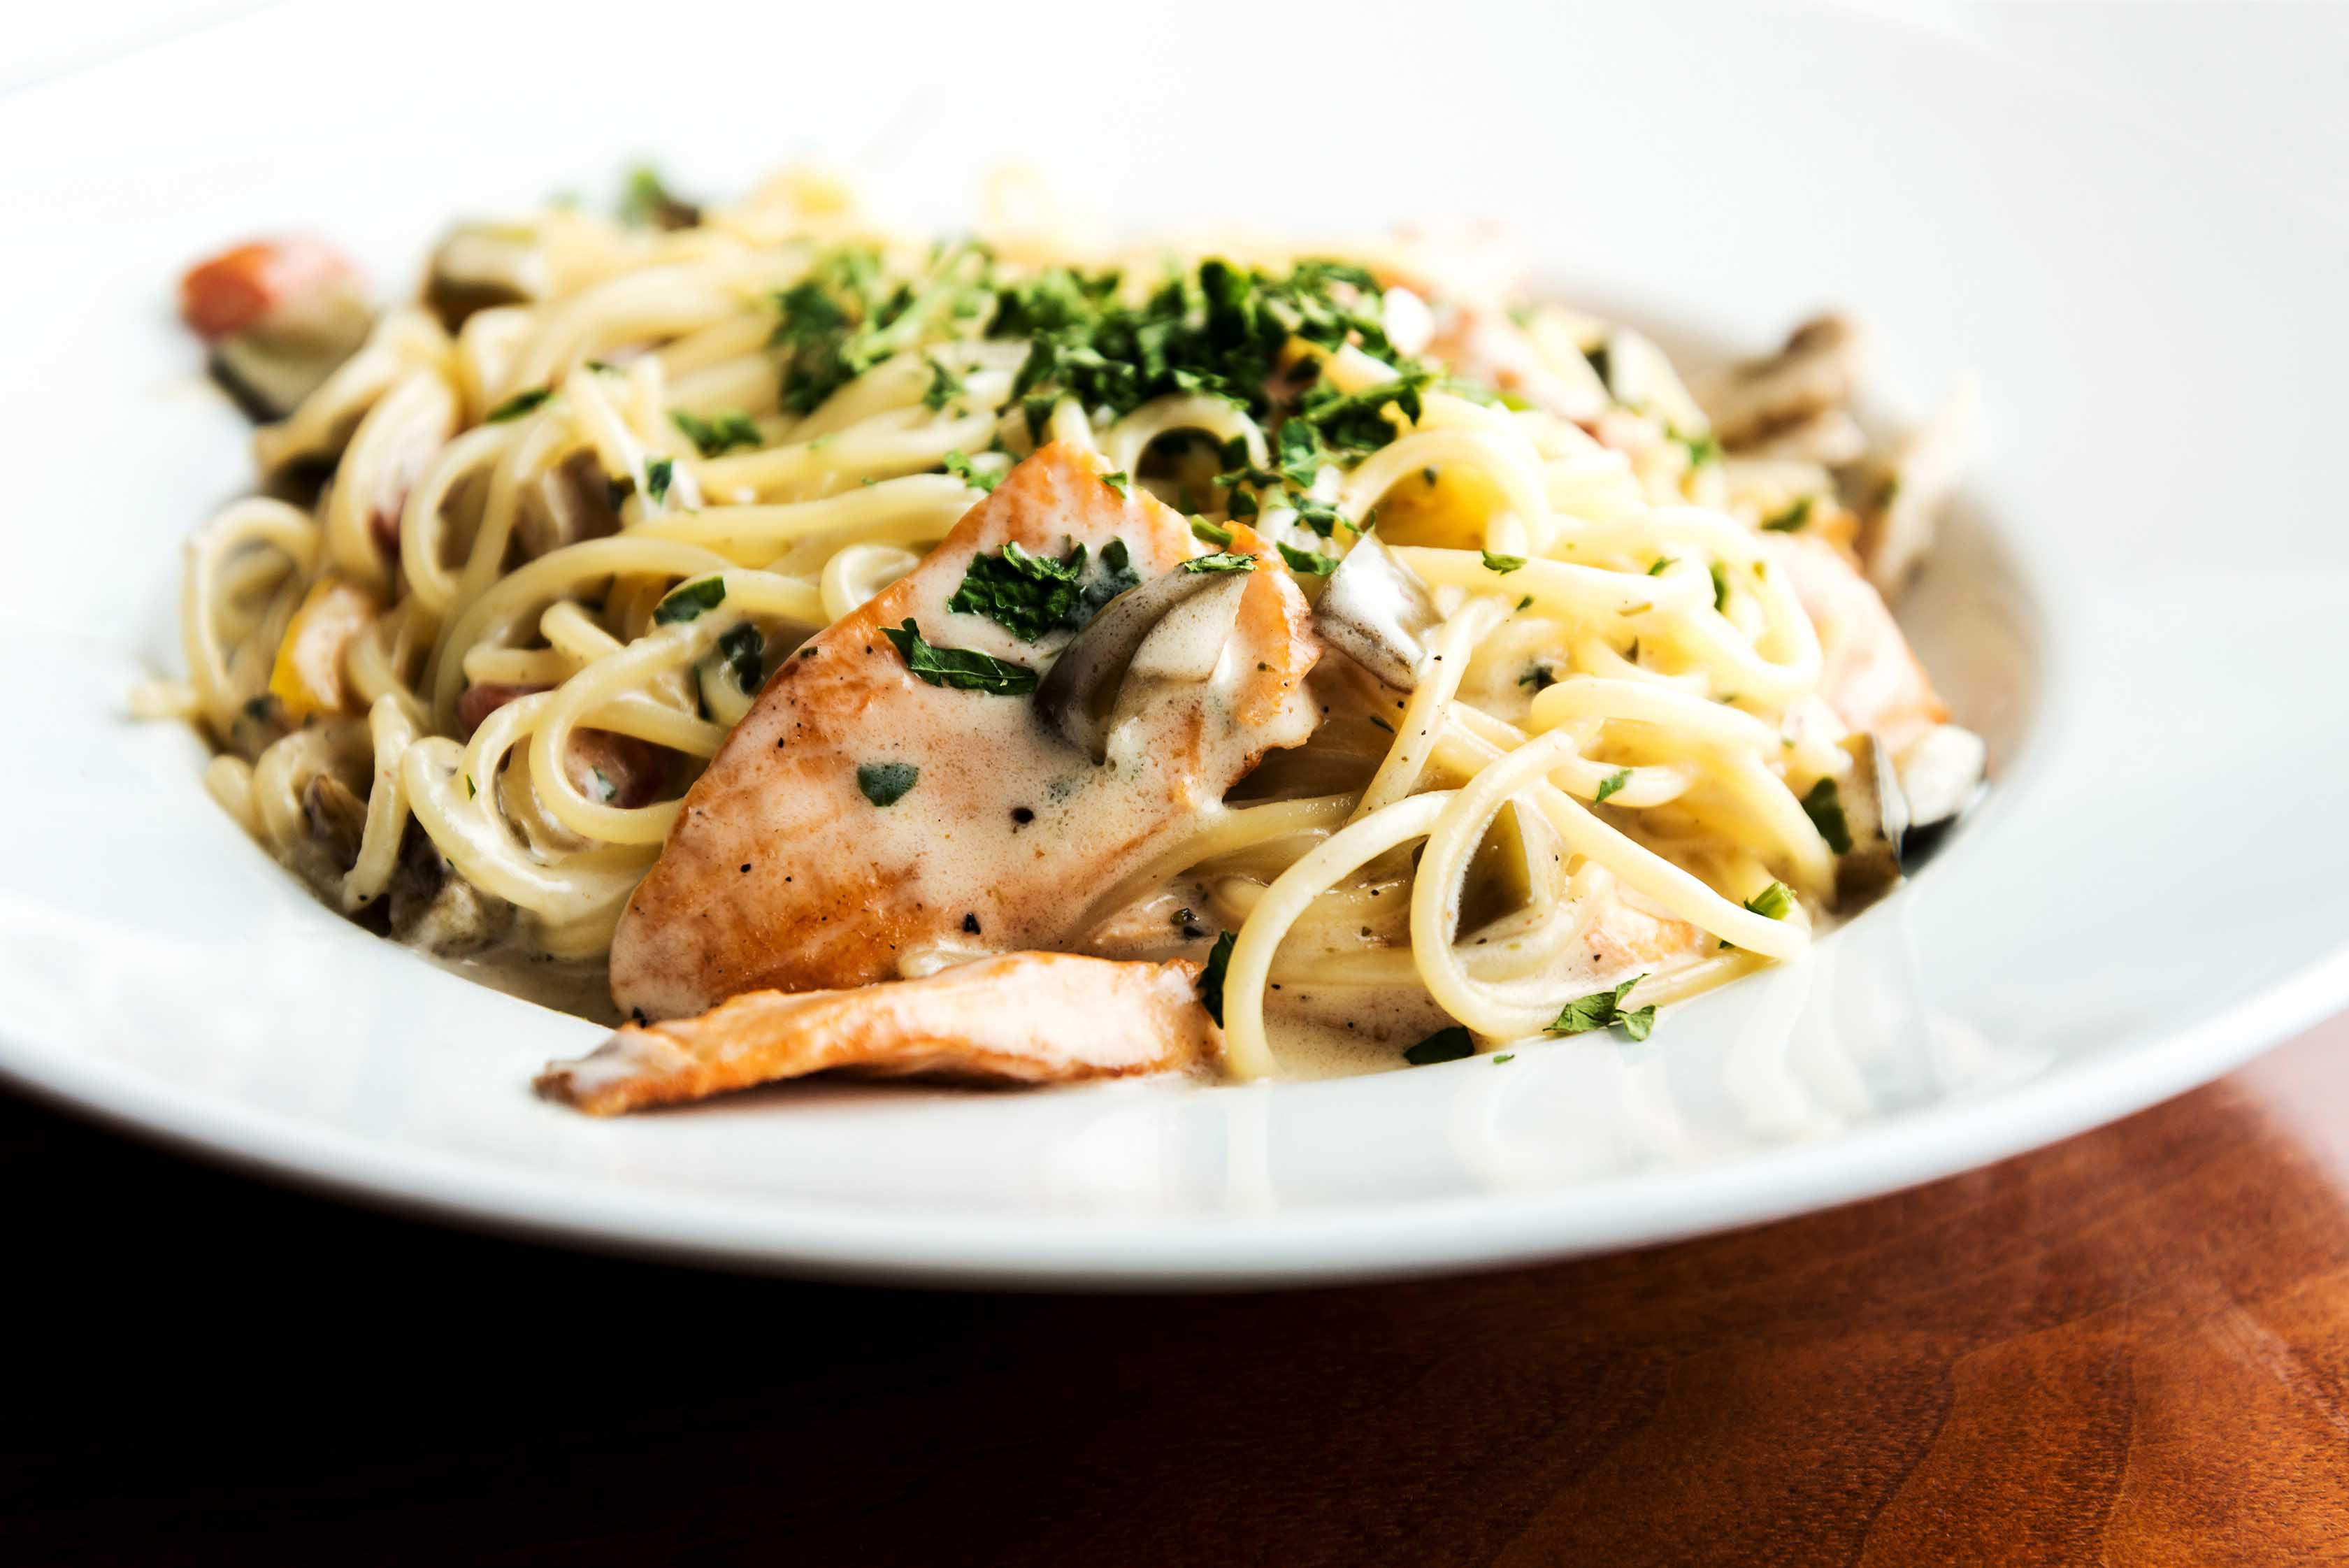 Pasta Dish with Seafood